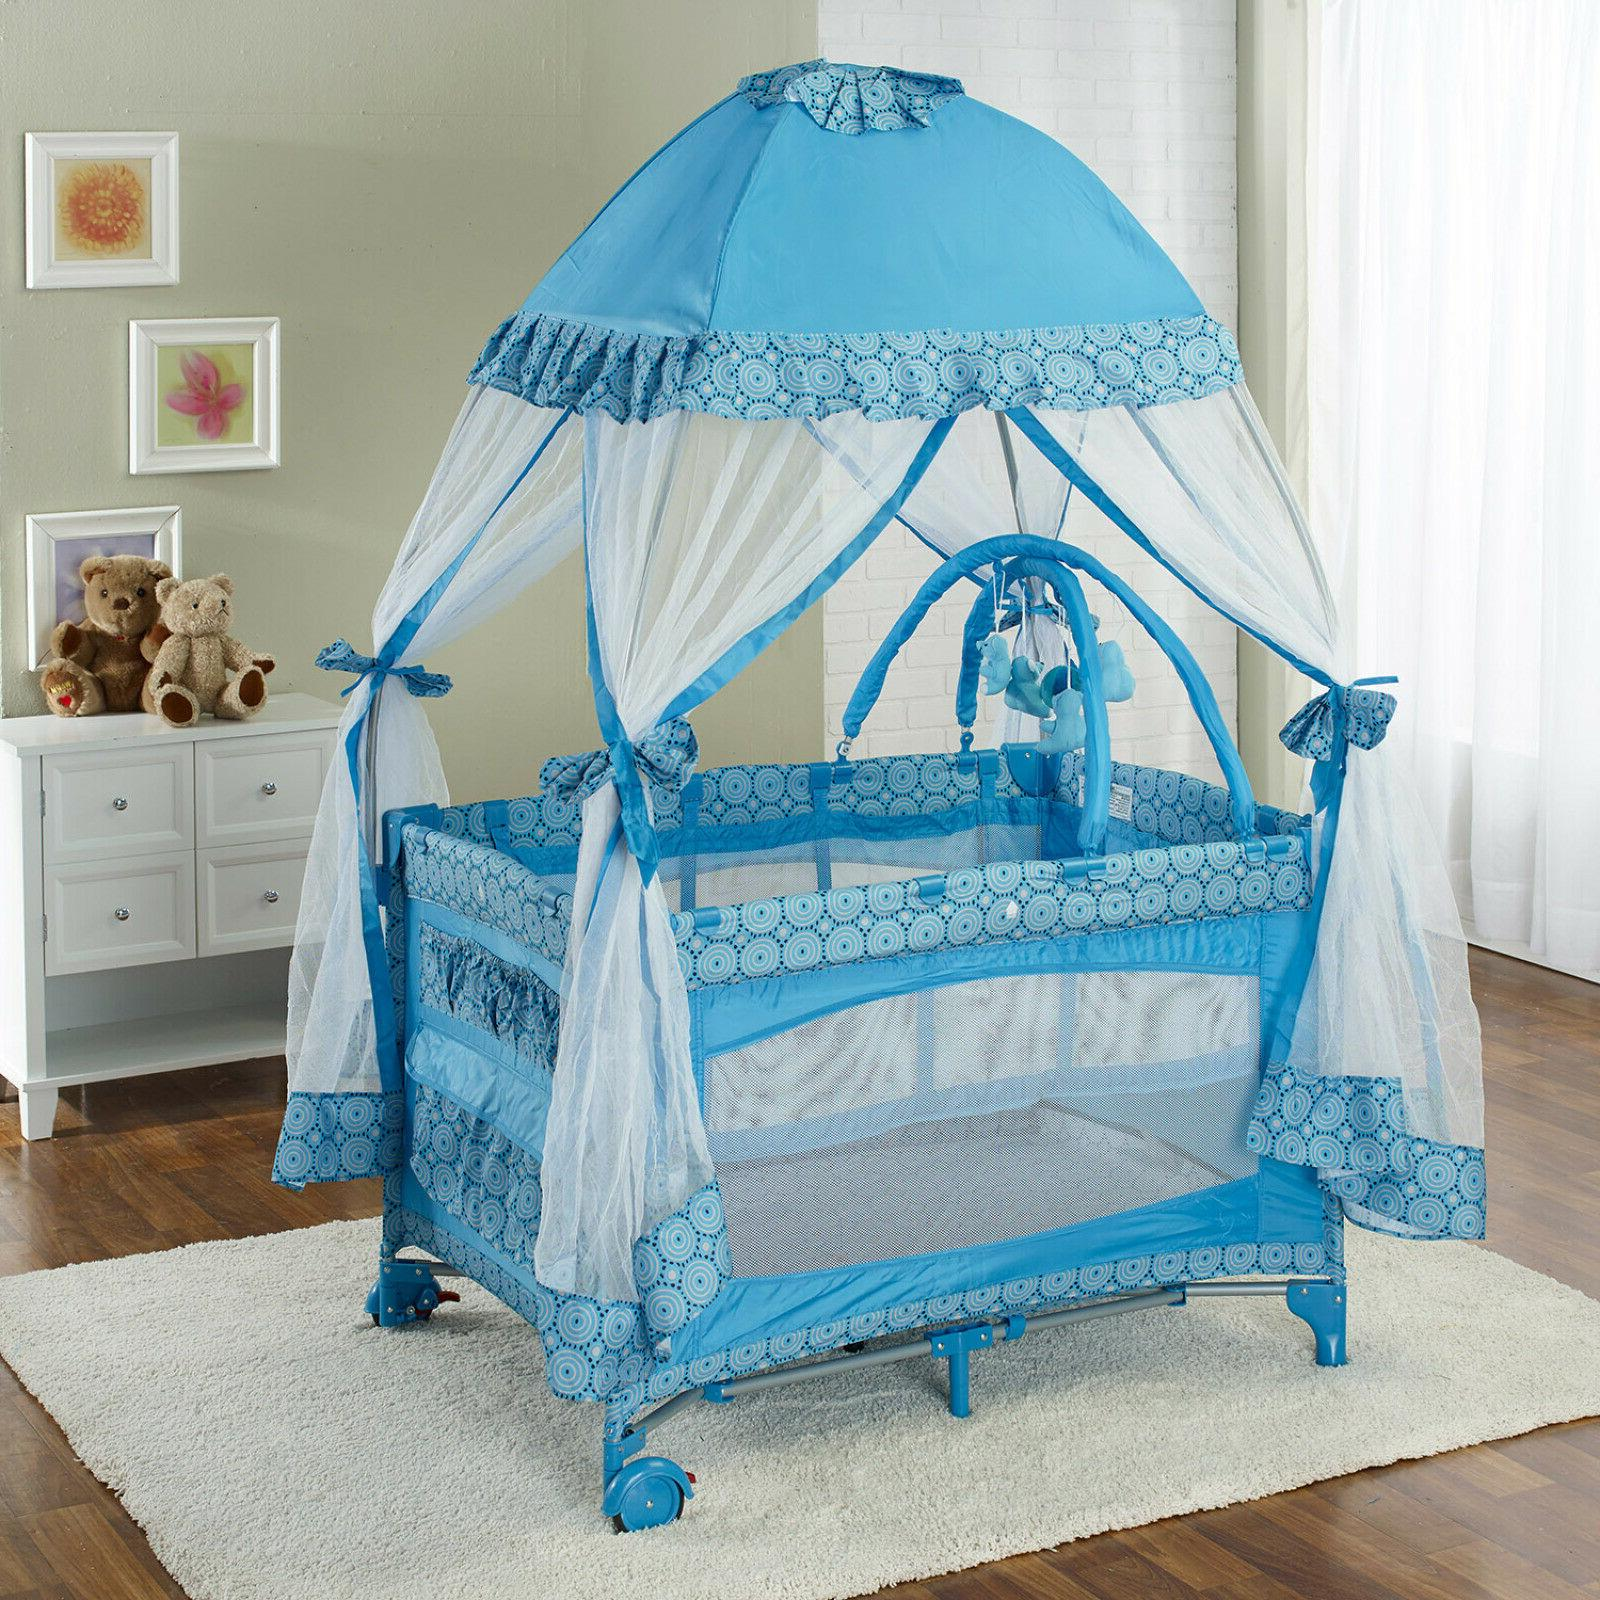 Big Oshi Portable Deluxe Playard With Durable Canopy Net Top